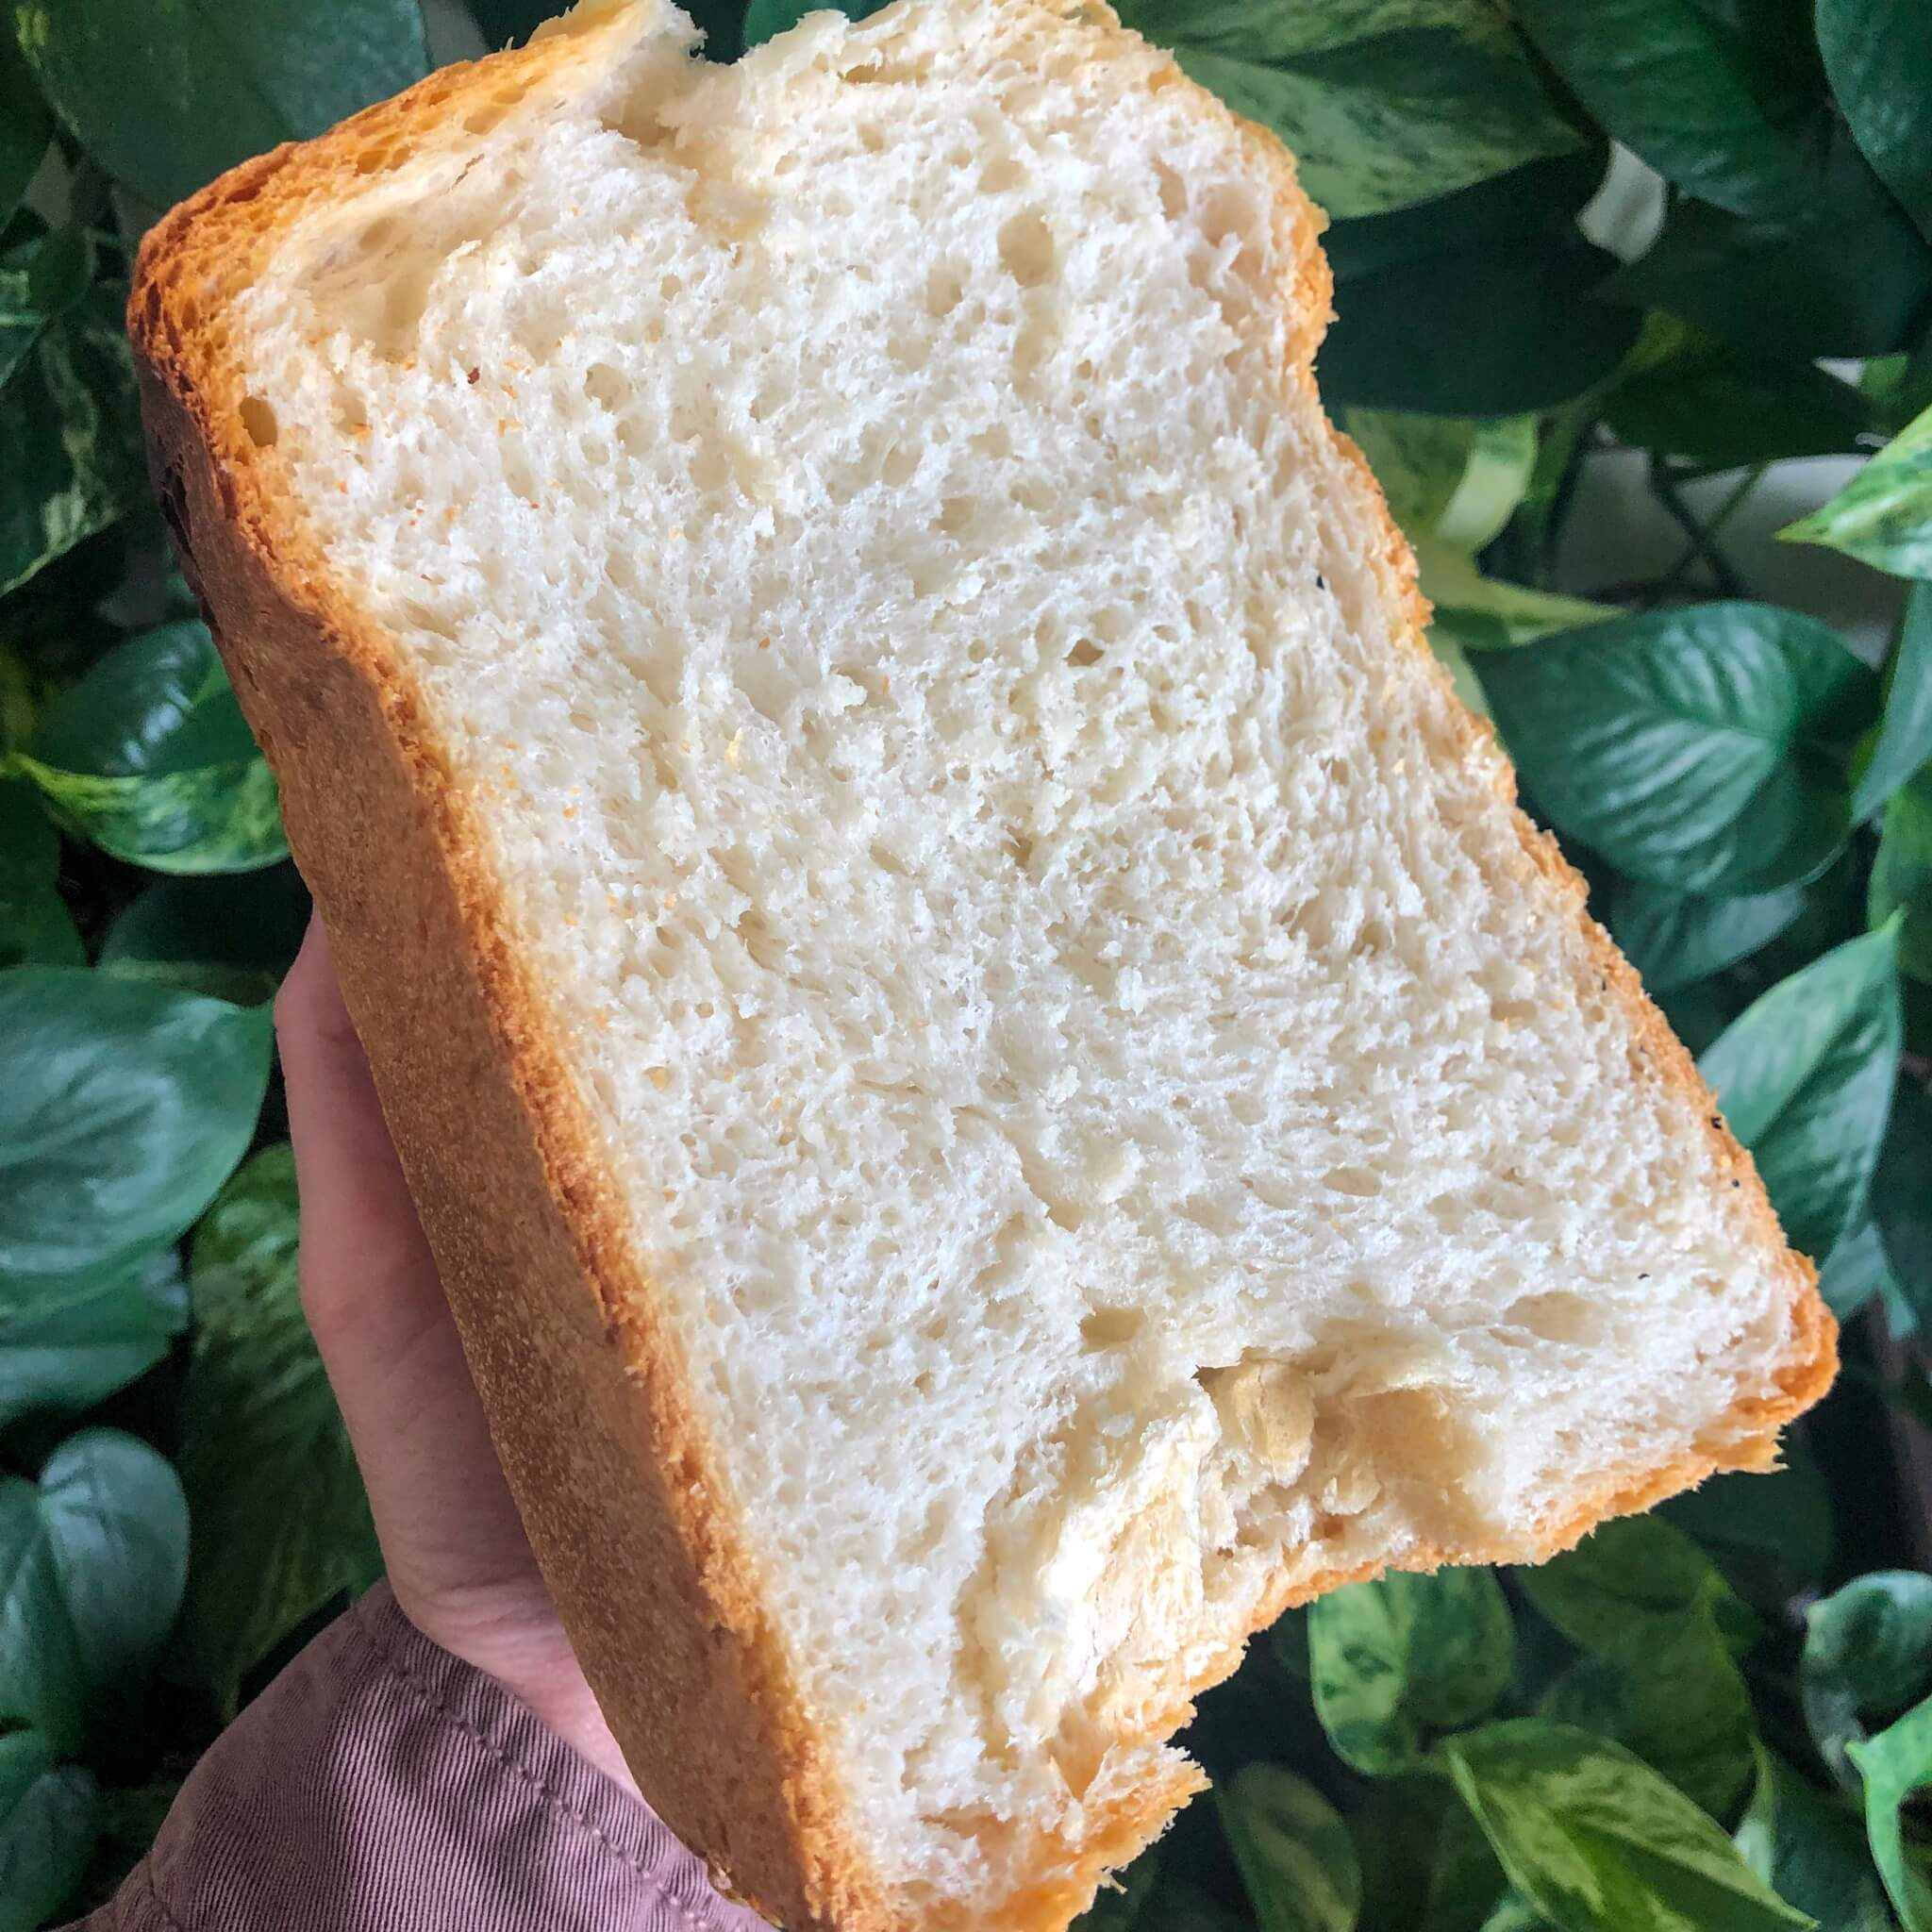 half a loaf of vegan white bread from a bread maker